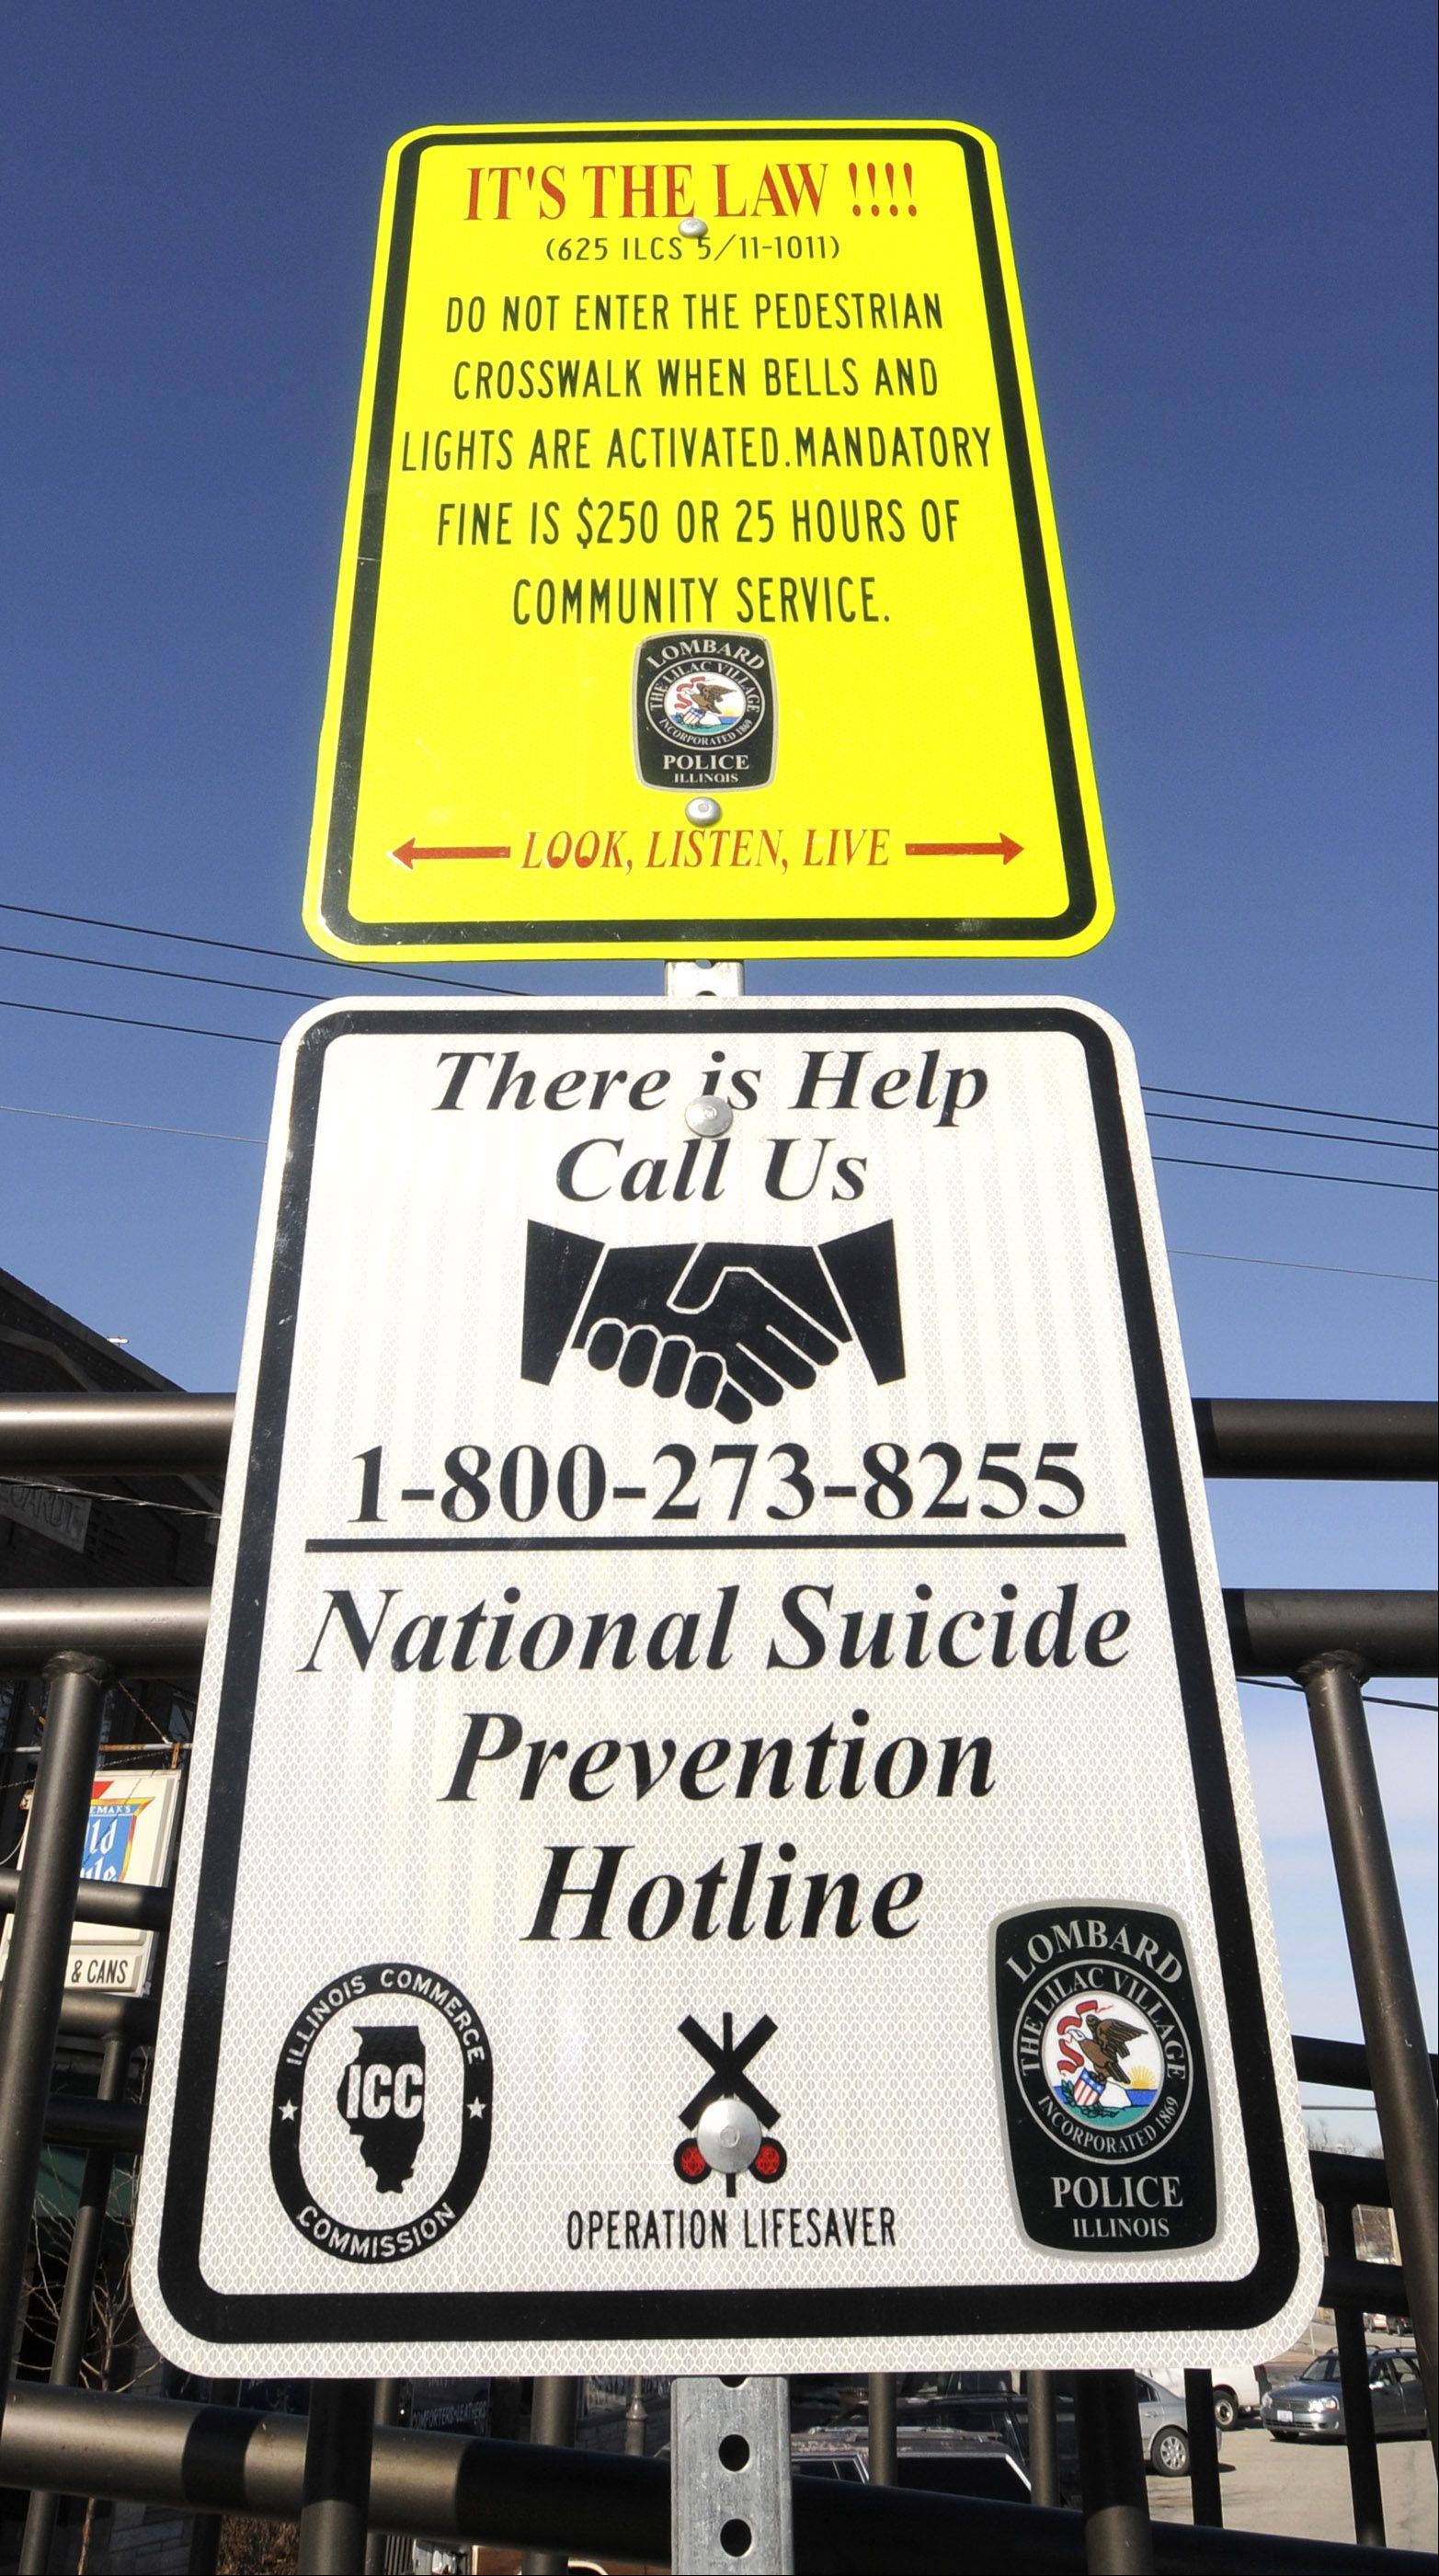 Lombard and Villa Park are the only towns in the state to post signs about suicide prevention near their train stations, railroad safety advocates say.